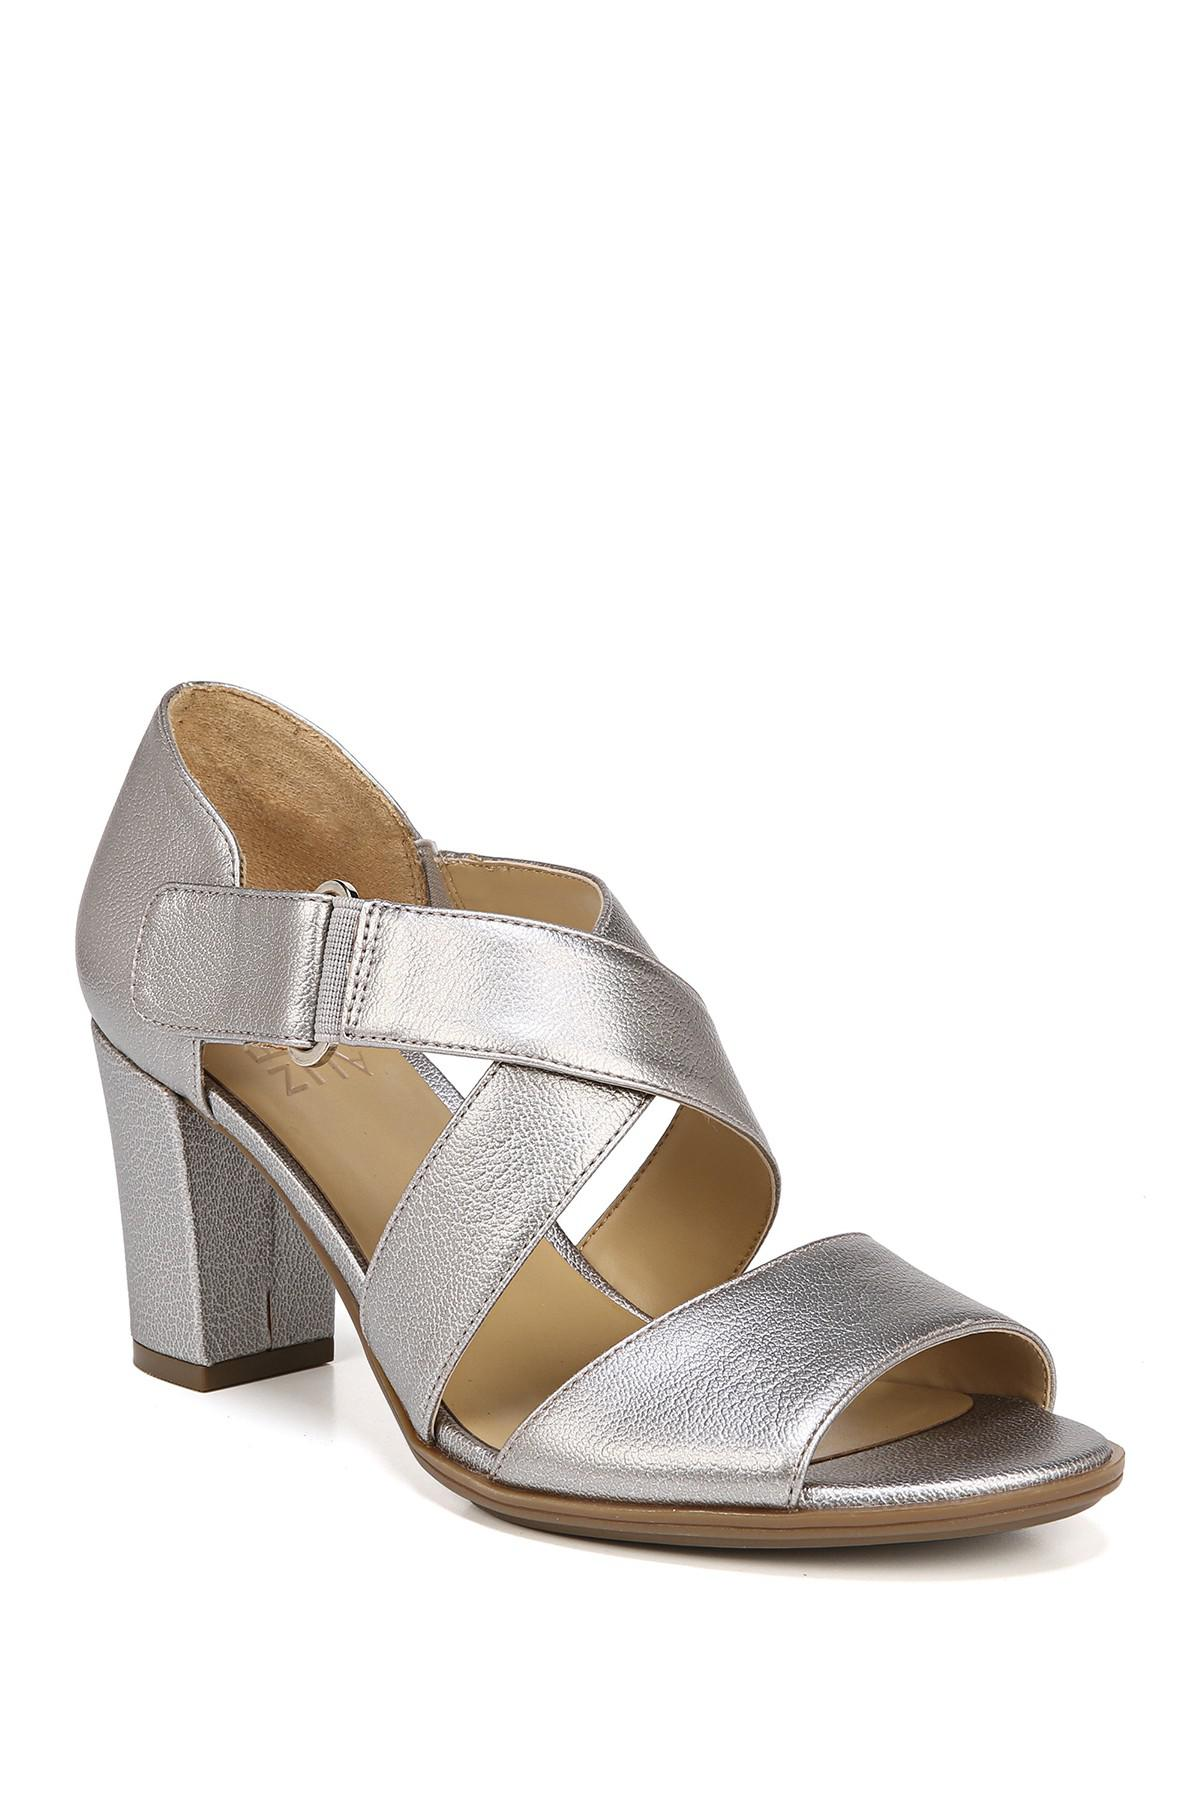 04df6a8ff39 Lyst - Naturalizer Lindy Sandal - Wide Width Available in Metallic